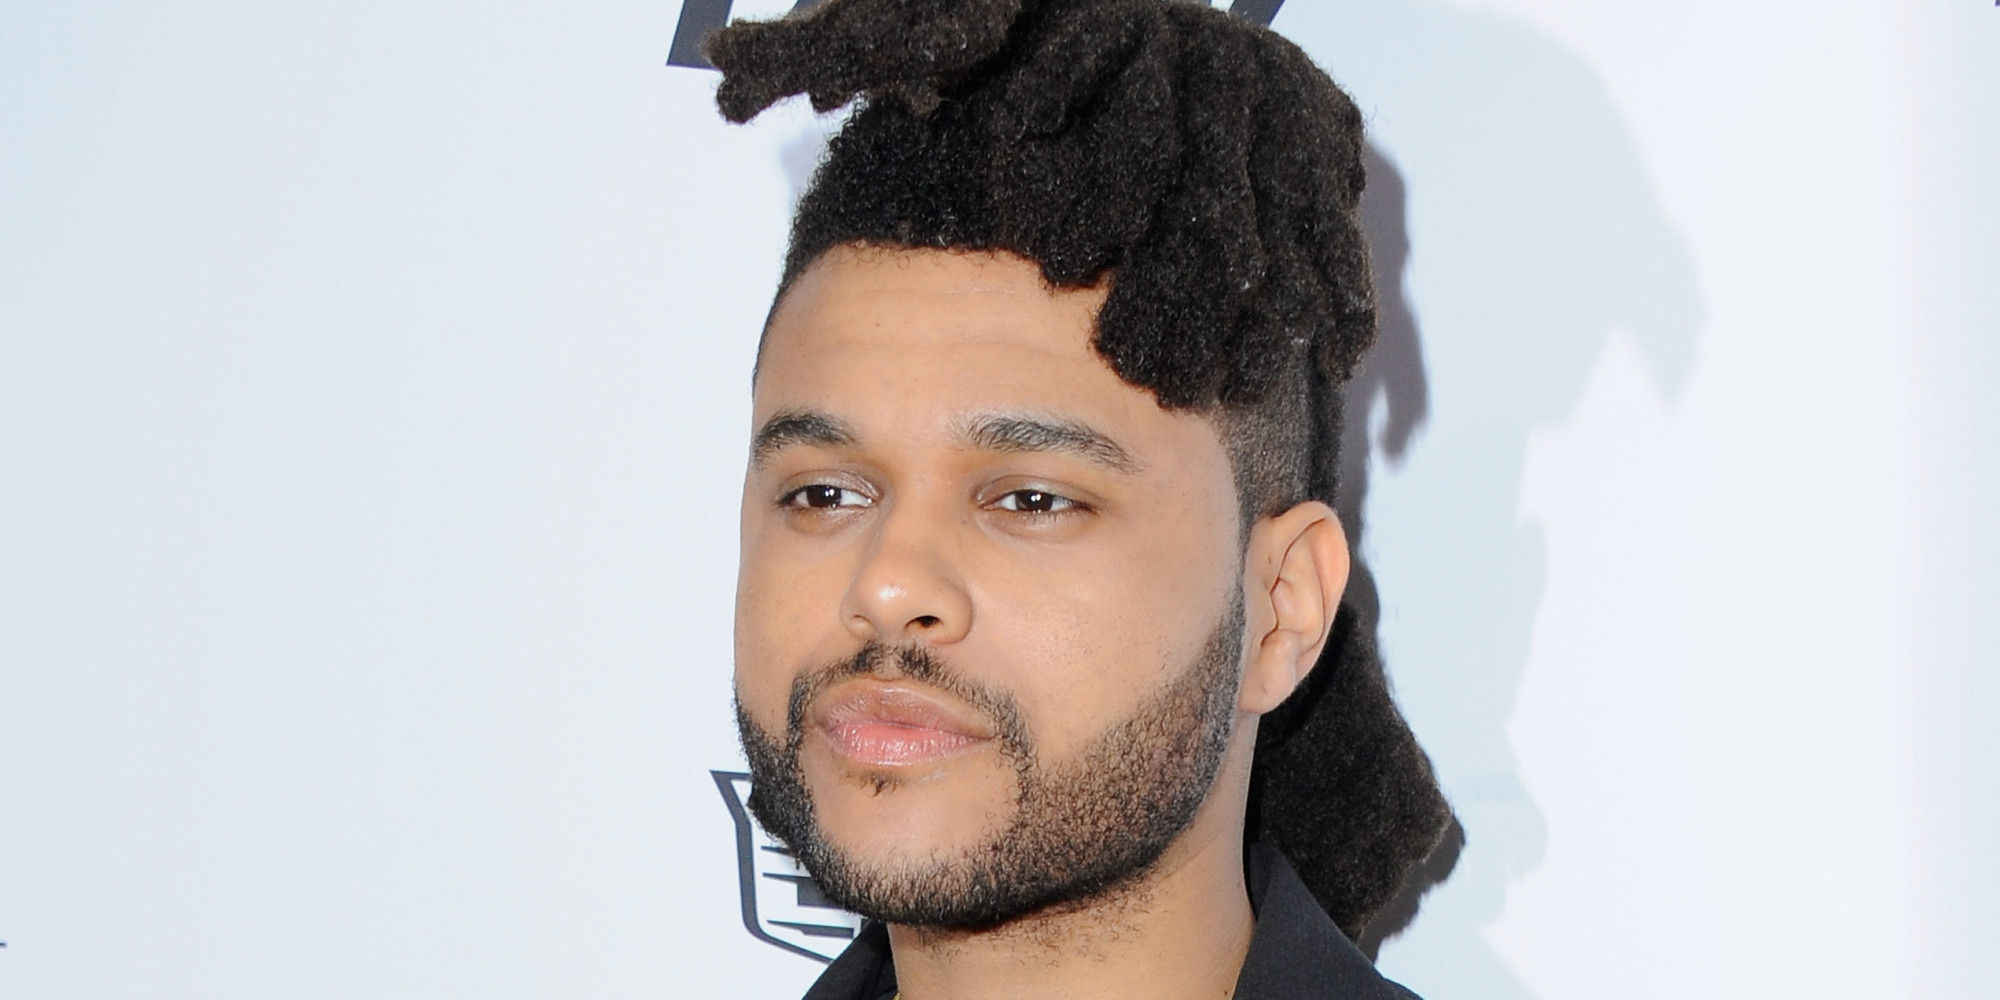 The Weeknd Cut His Legendary Hair For New Album 39;Starboy39;